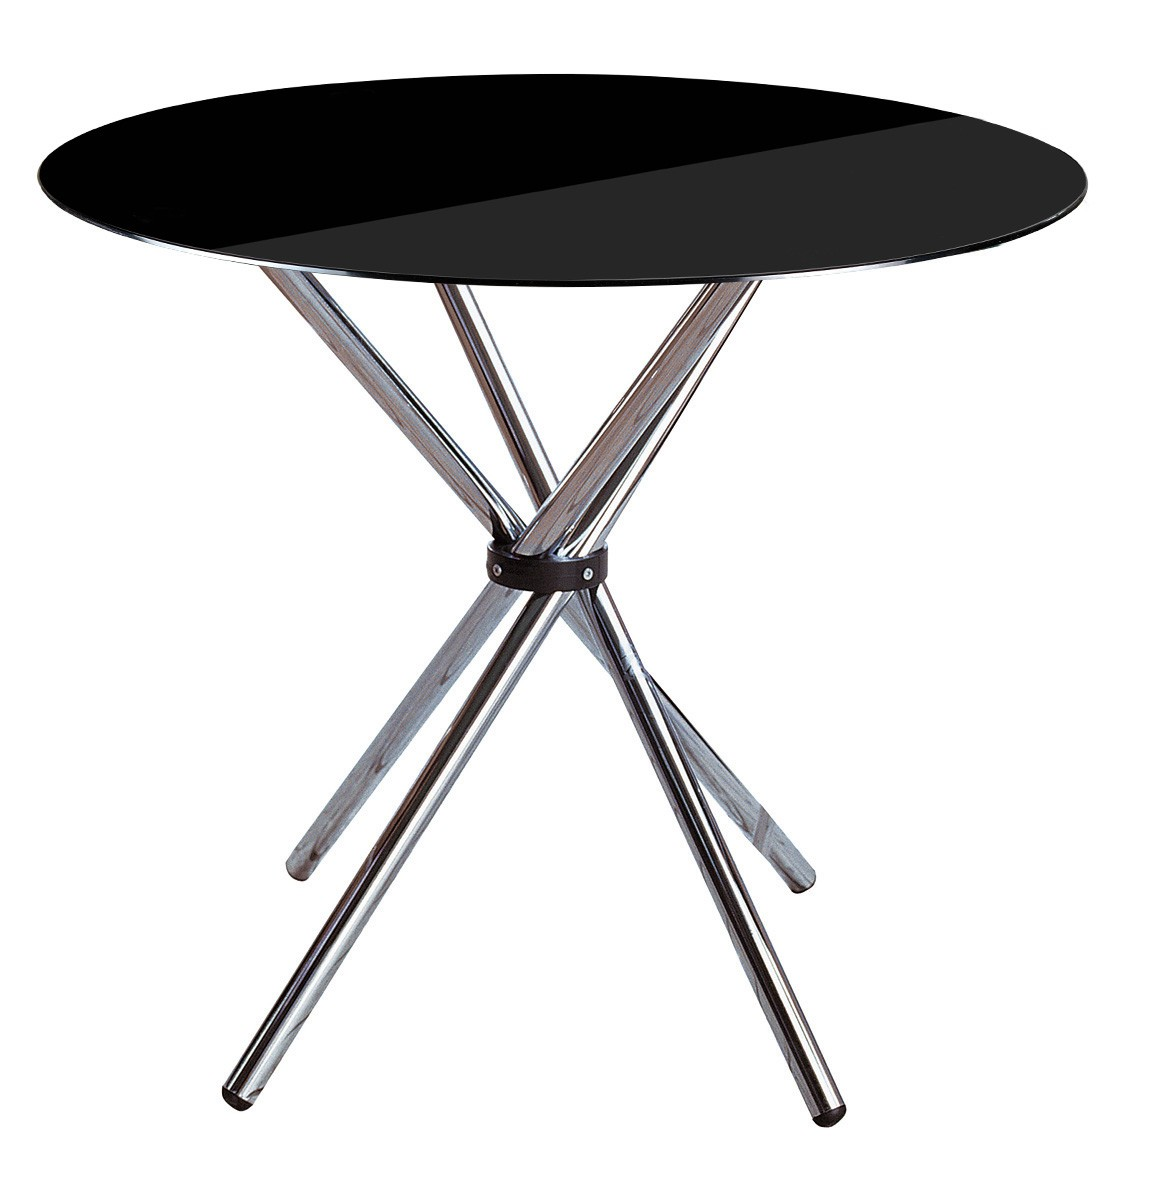 Dining Table, Black Tempered Glass, Chrome Finish Legs